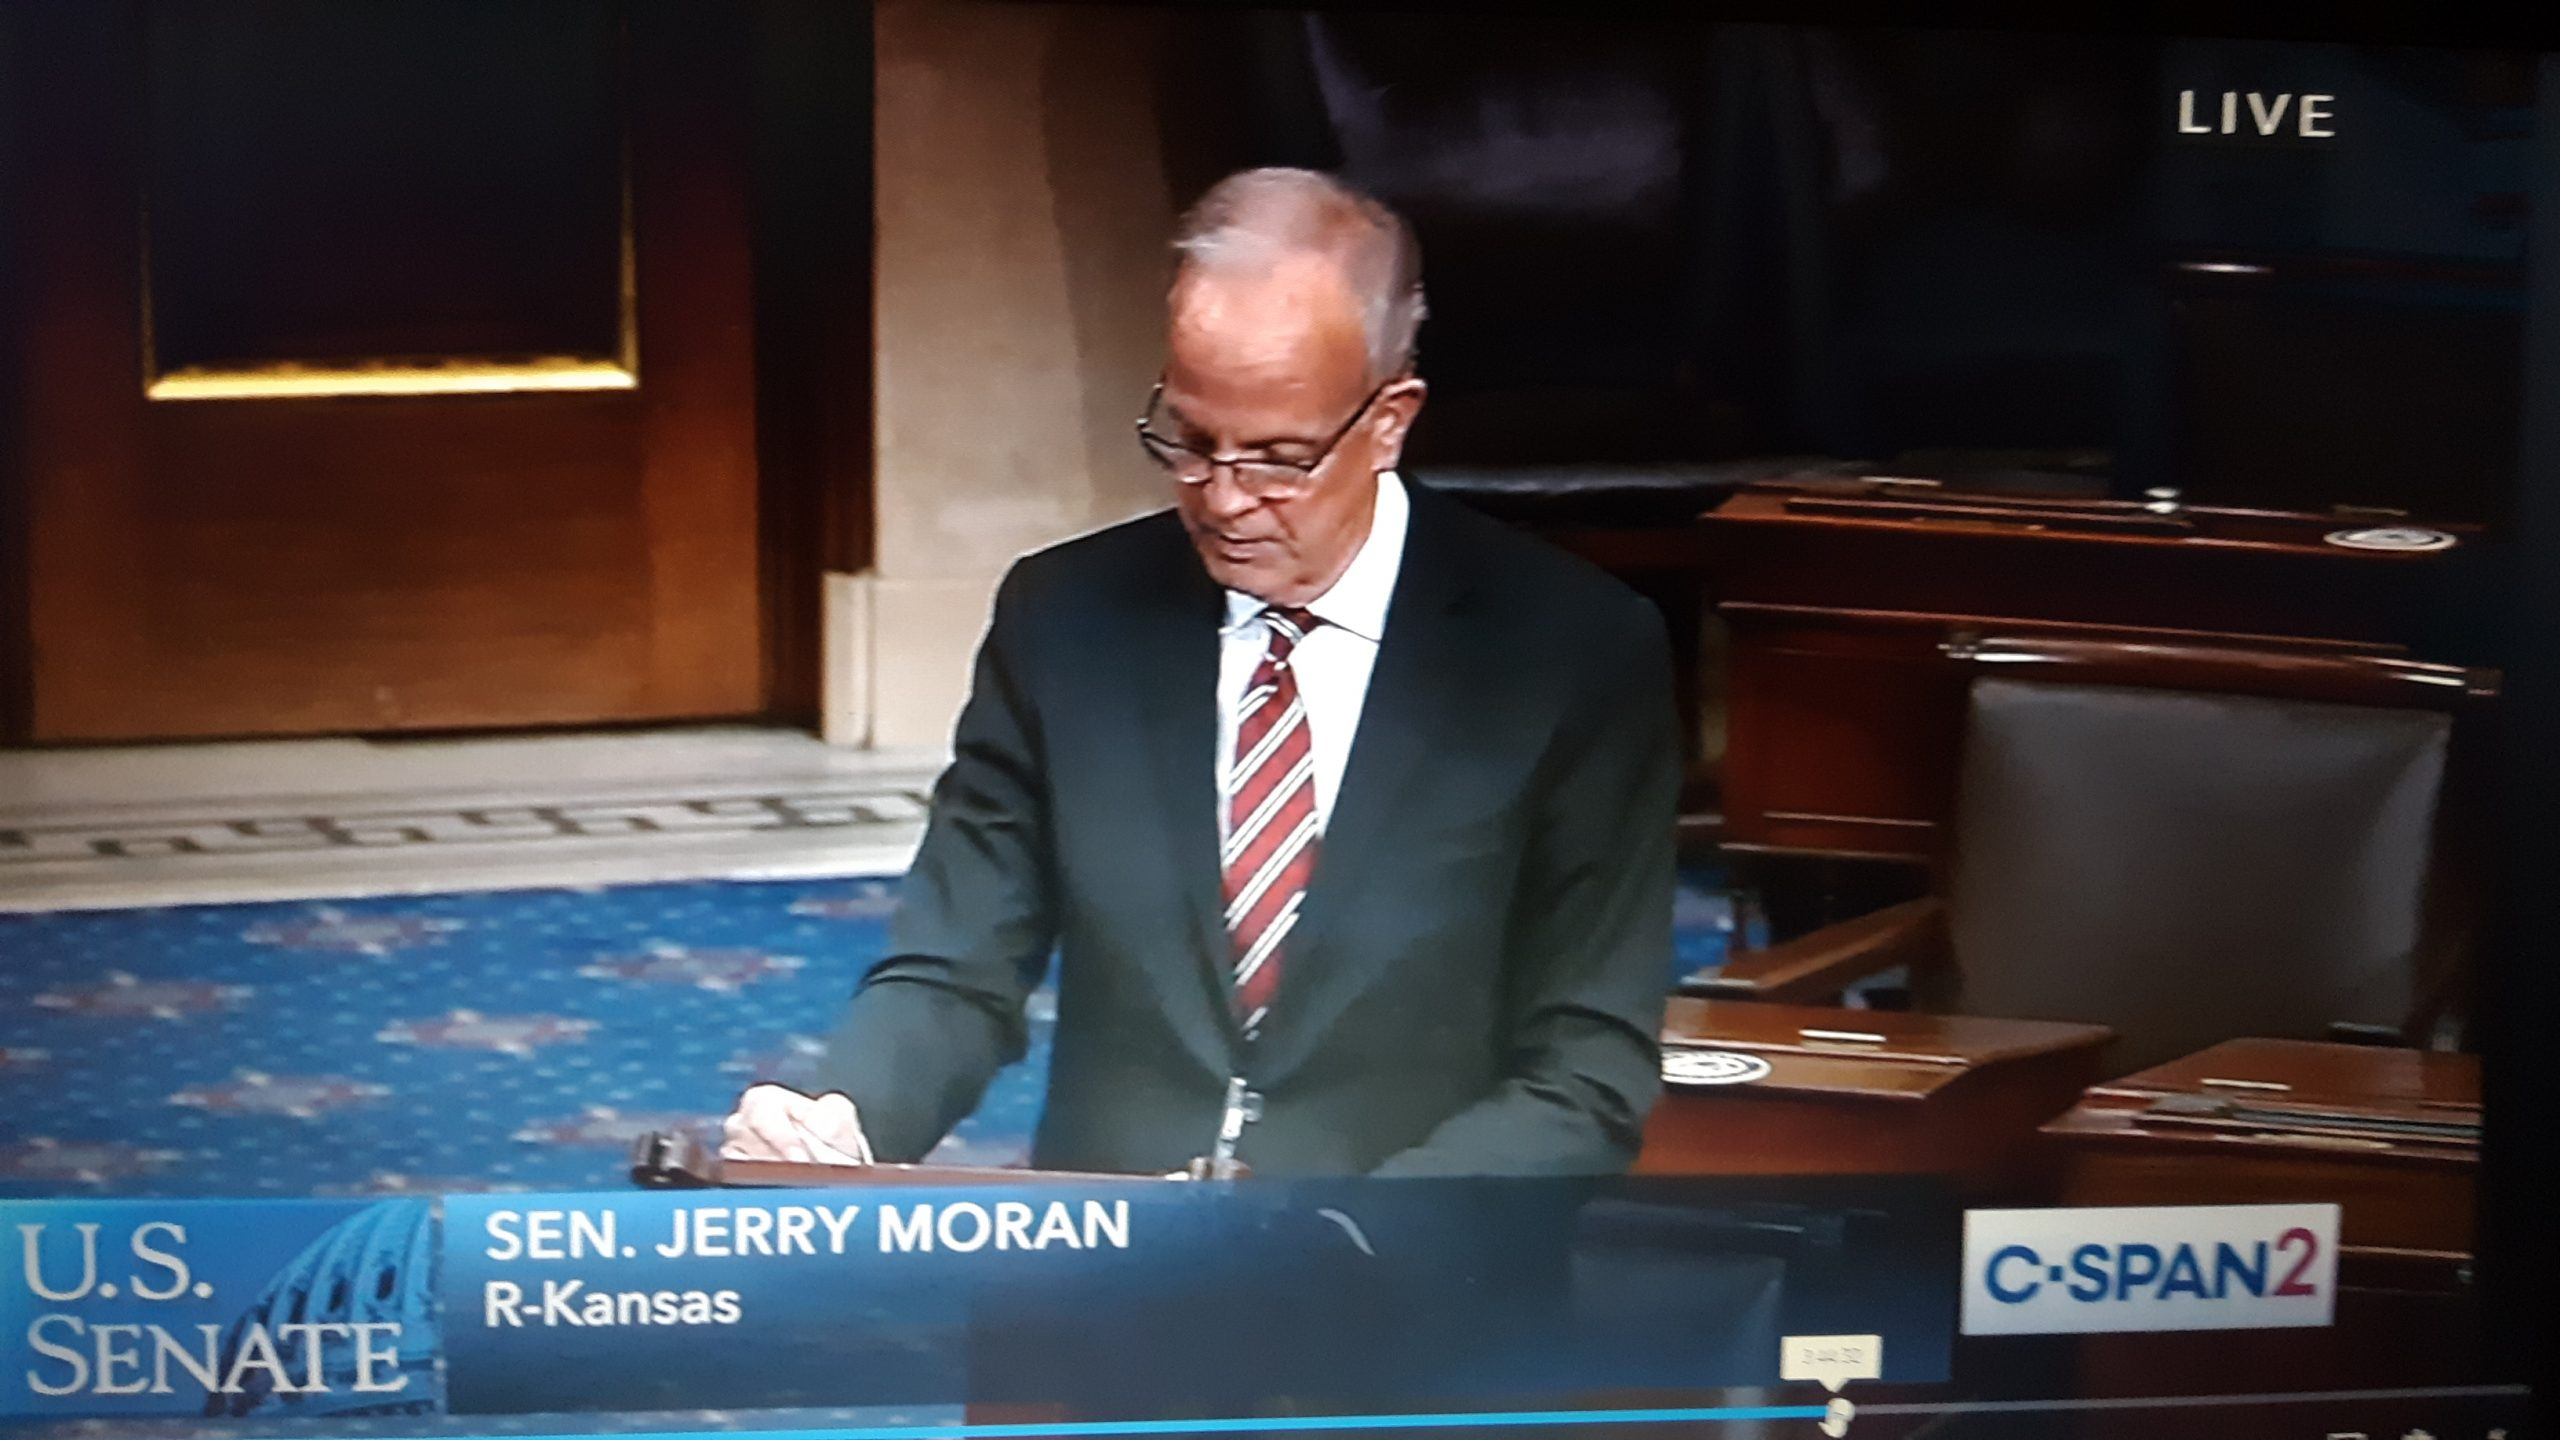 U.S. Sen. Jerry Moran, a Kansas Republican, praised nomination of Kansas solicitor general Toby Crouse for appointment to the U.S. District Court in Kansas. His nomination was affirmed 50-43. (Image from C-SPAN2/Kansas Reflector)